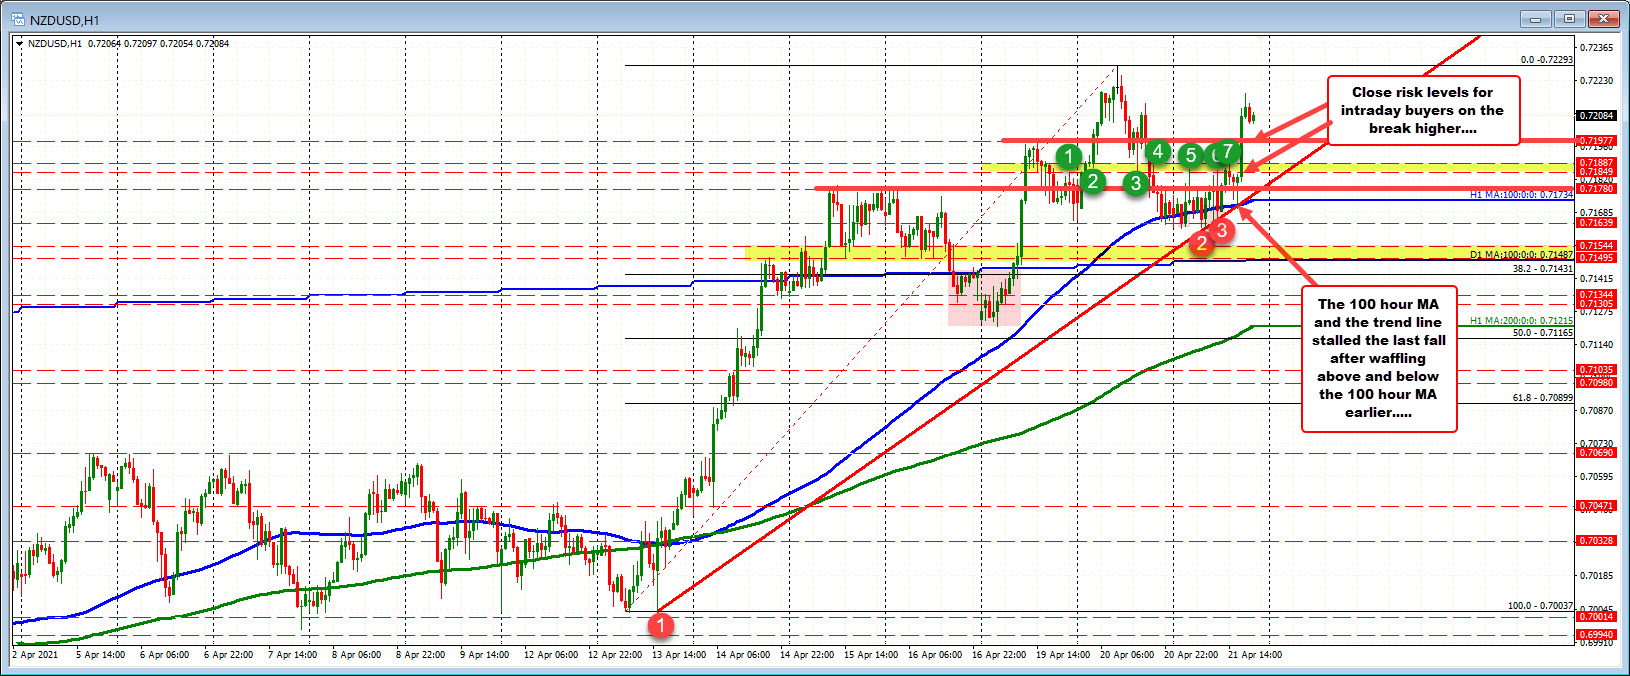 NZDUSD retraces recent declines, but can it keep the momentum going